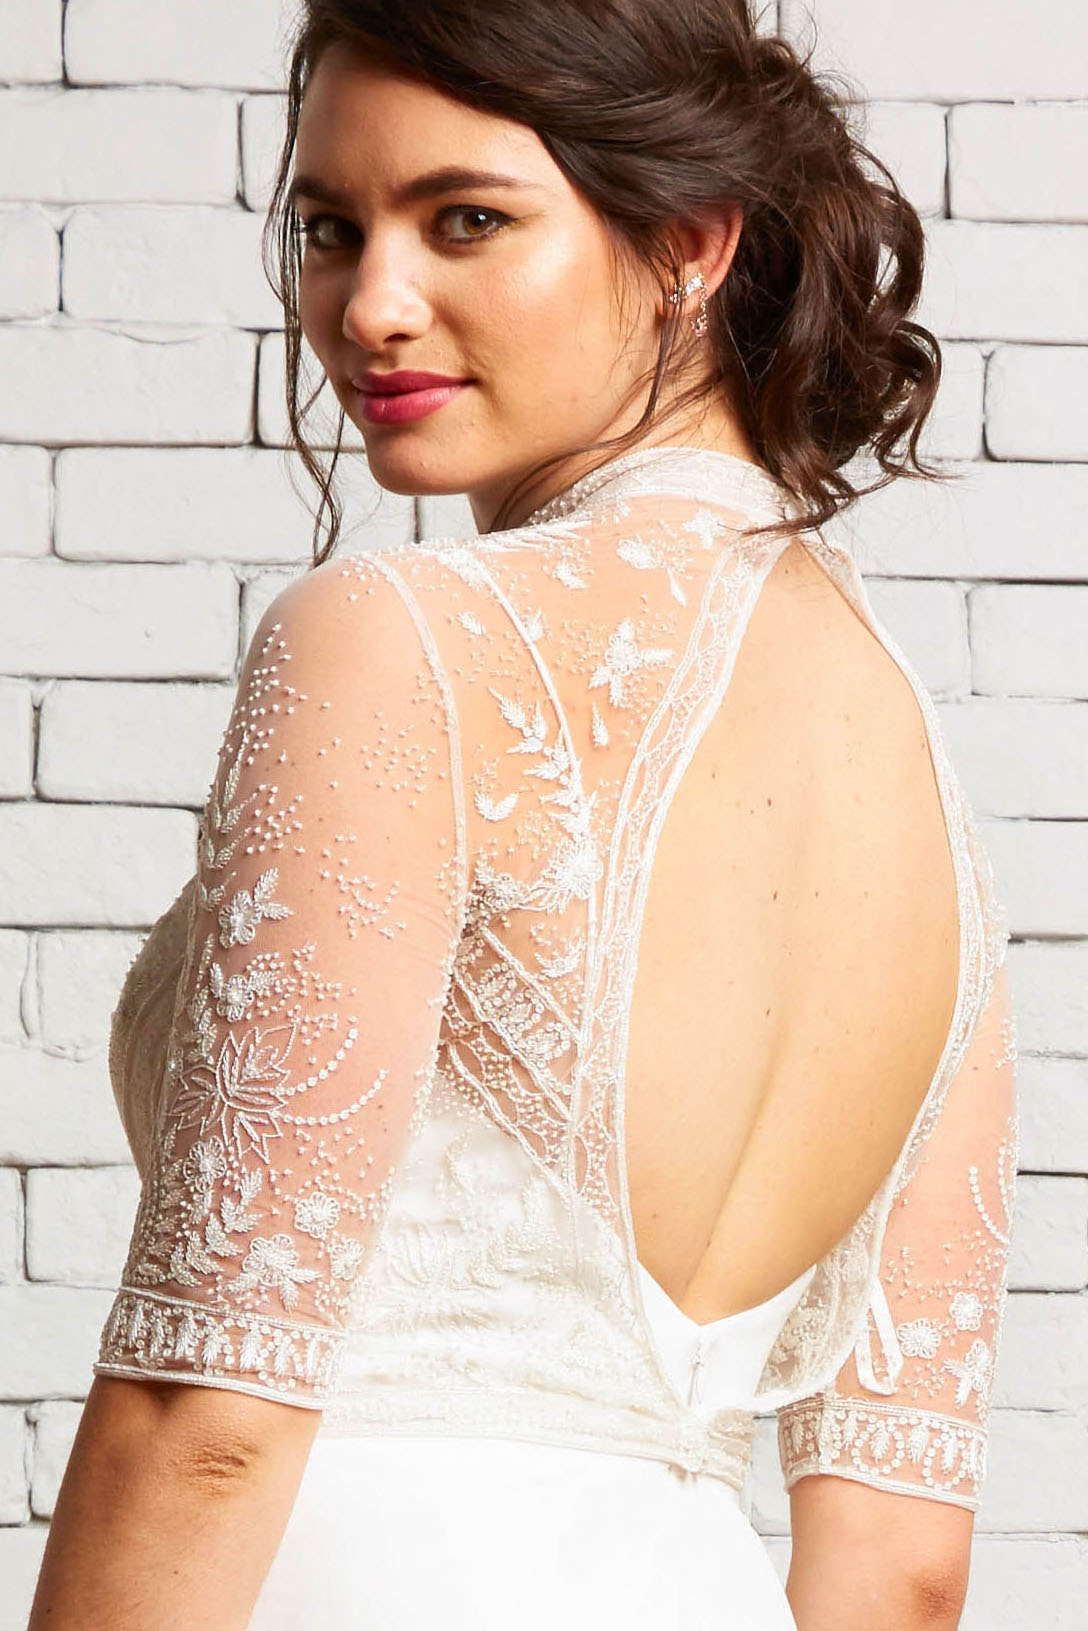 4B Thea-Daisy Back-Rebecca Schoneveld-Embroidered_Modern_High-neck_Wedding_Top.jpg